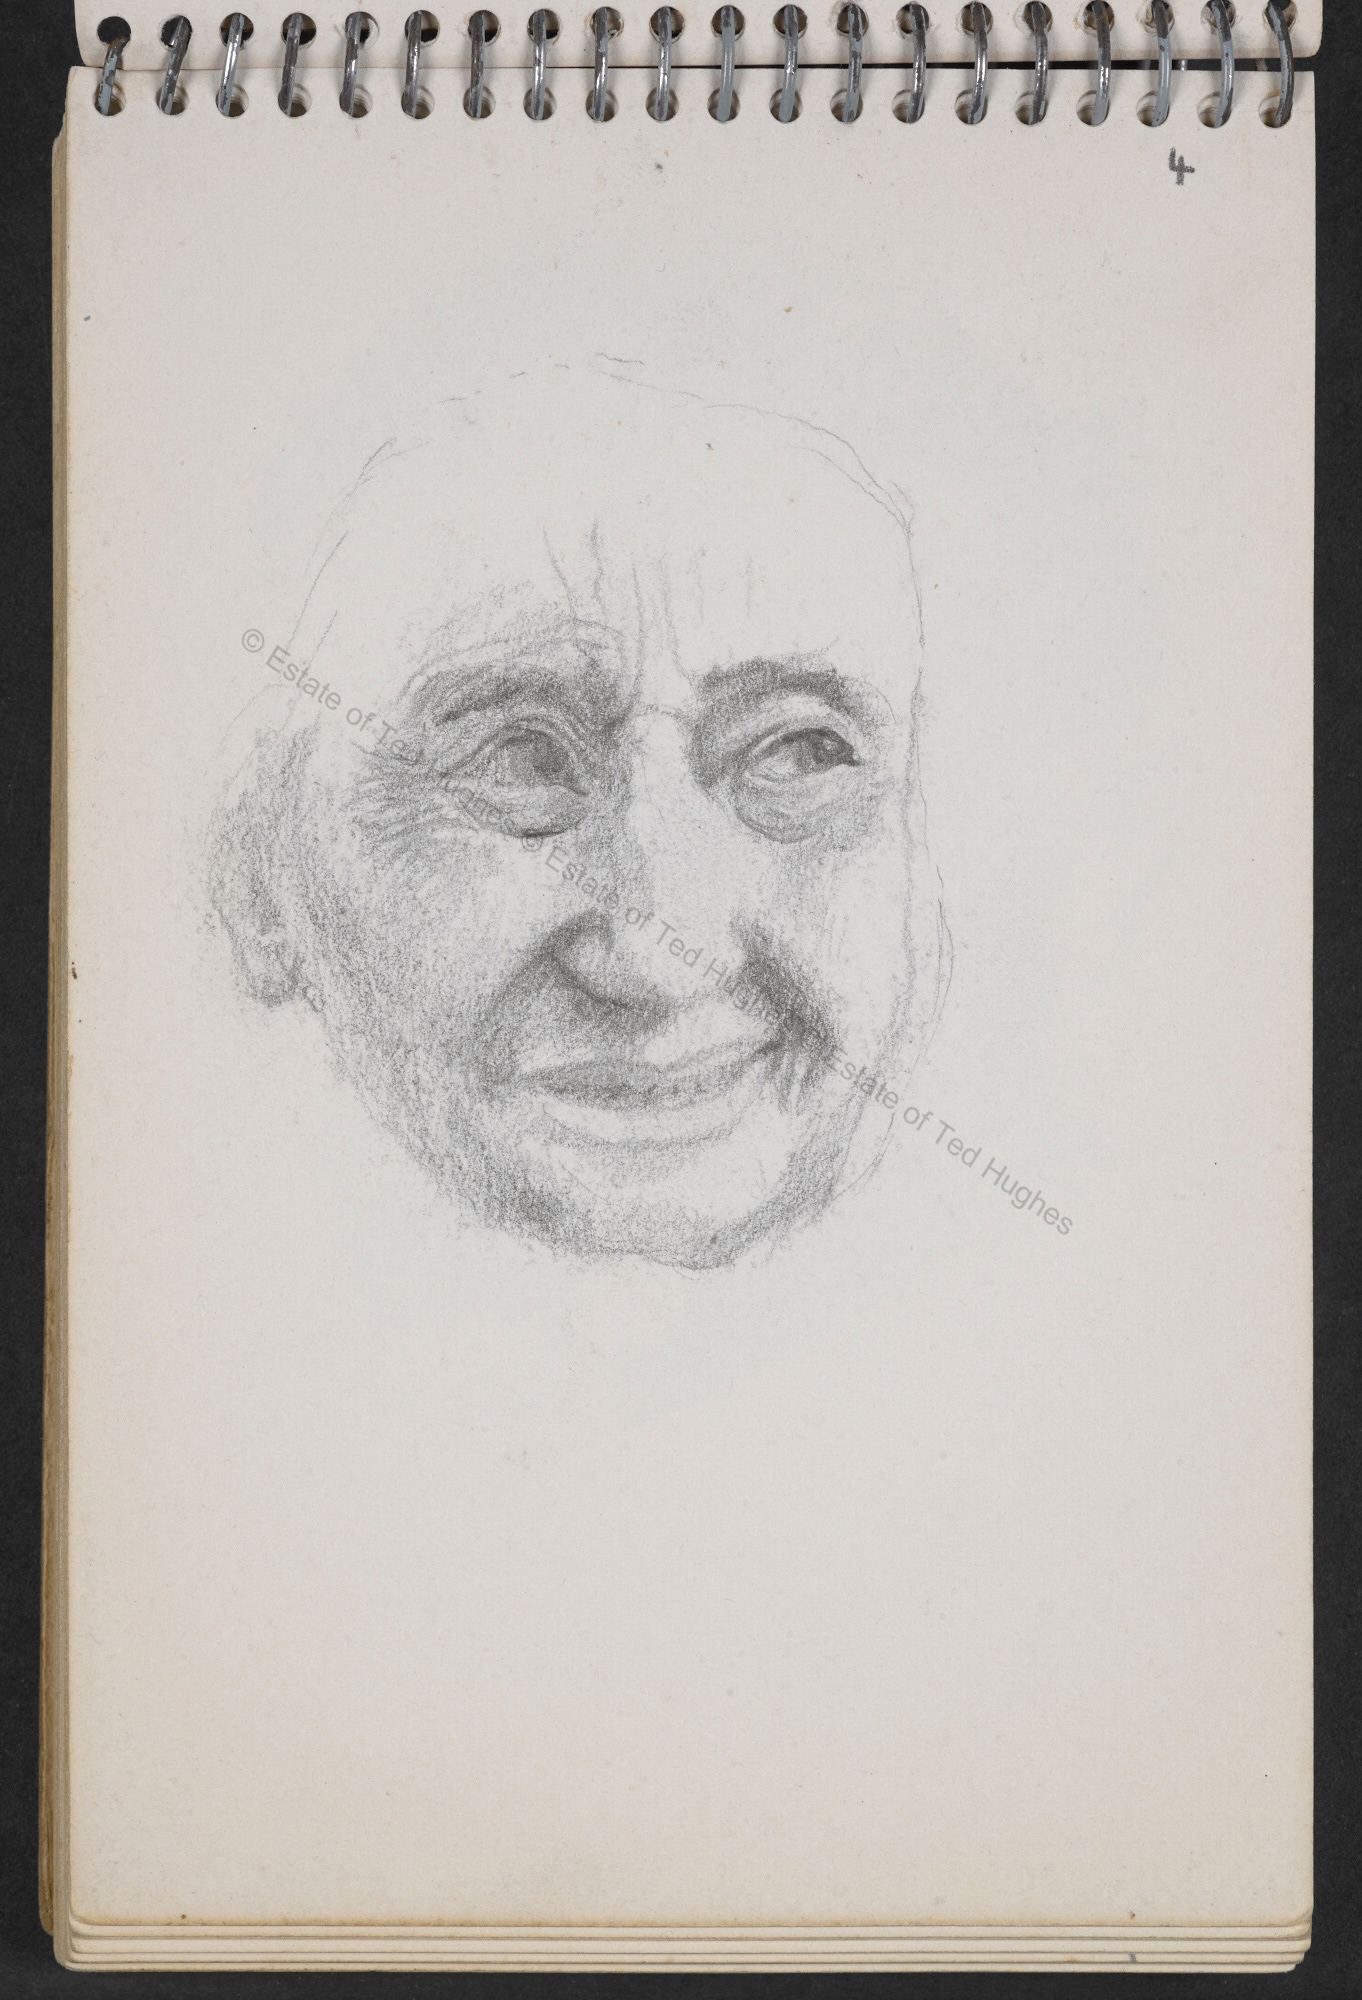 Sketches by Ted Hughes